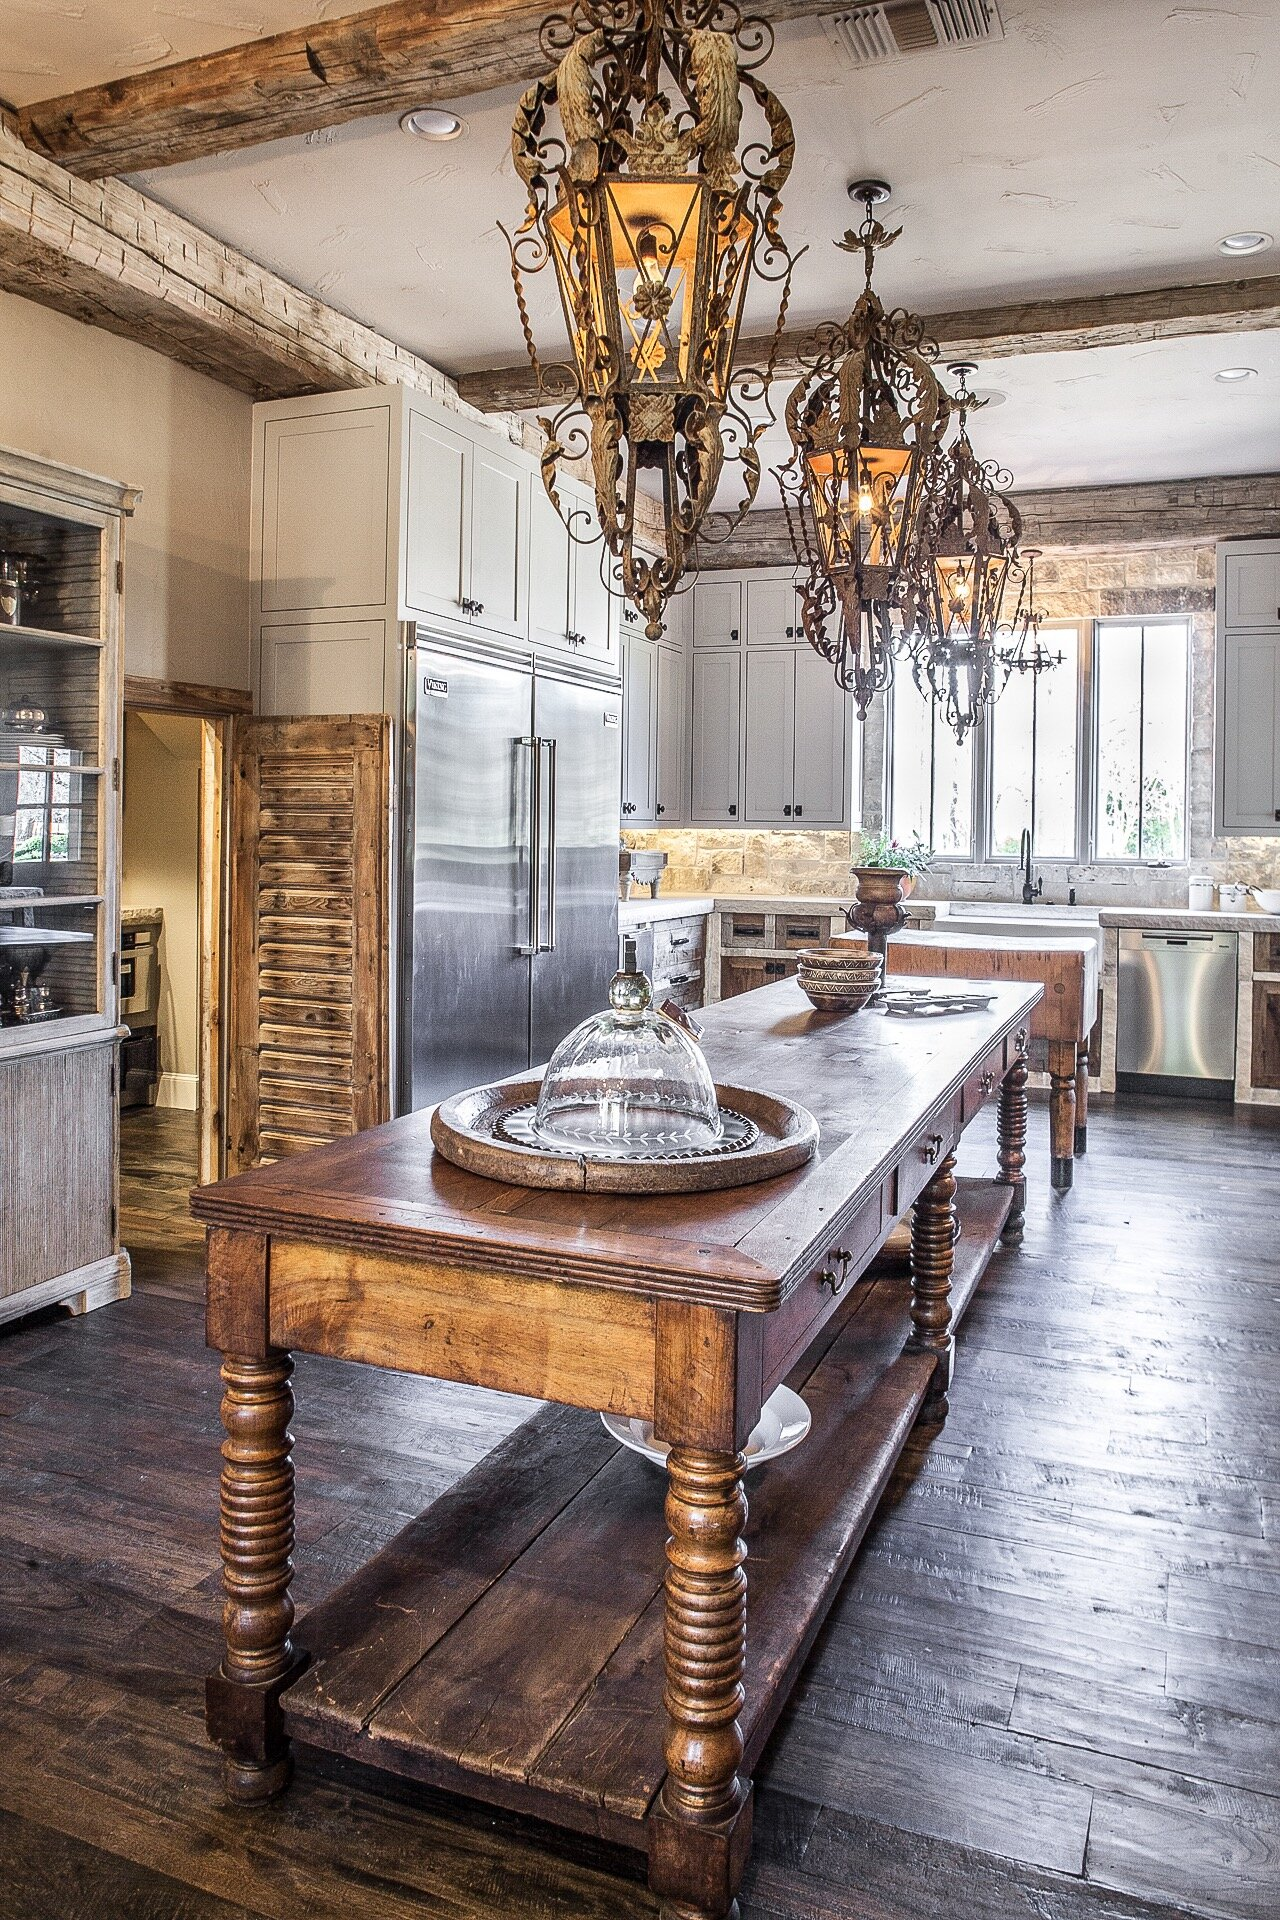 Design by  Kaci Lyford . shop salvage kitchen islands online at  east end salvage ..